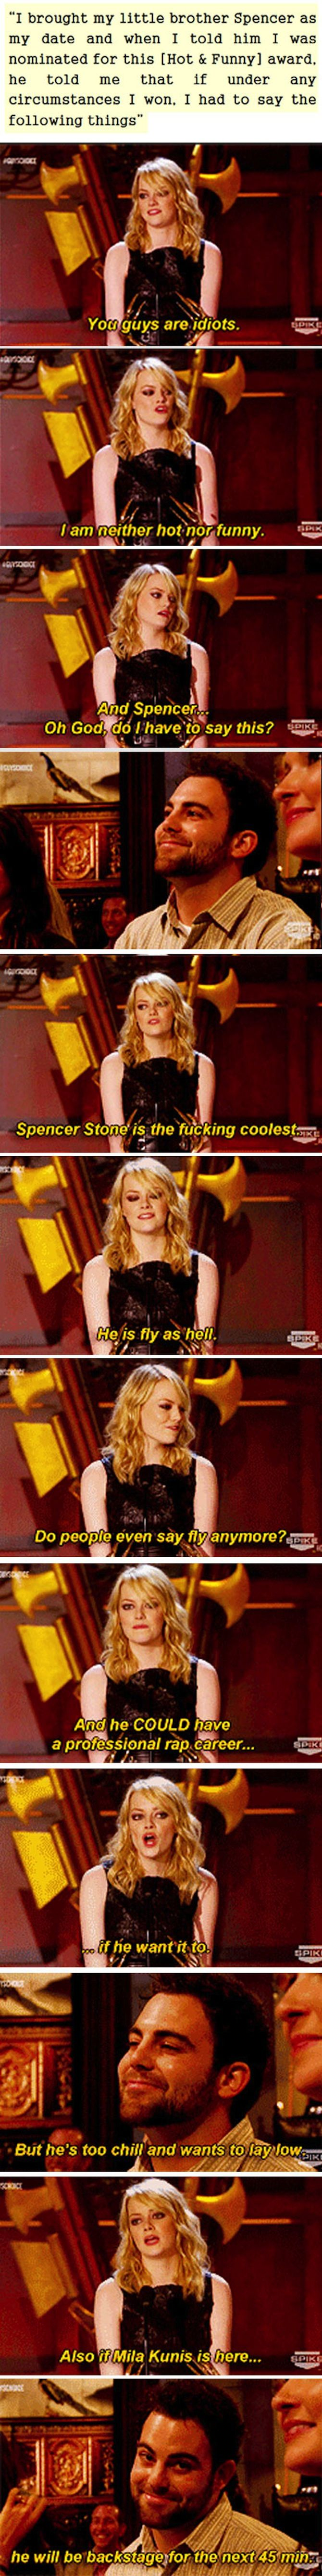 Why Emma Stone is the coolest sister ever.